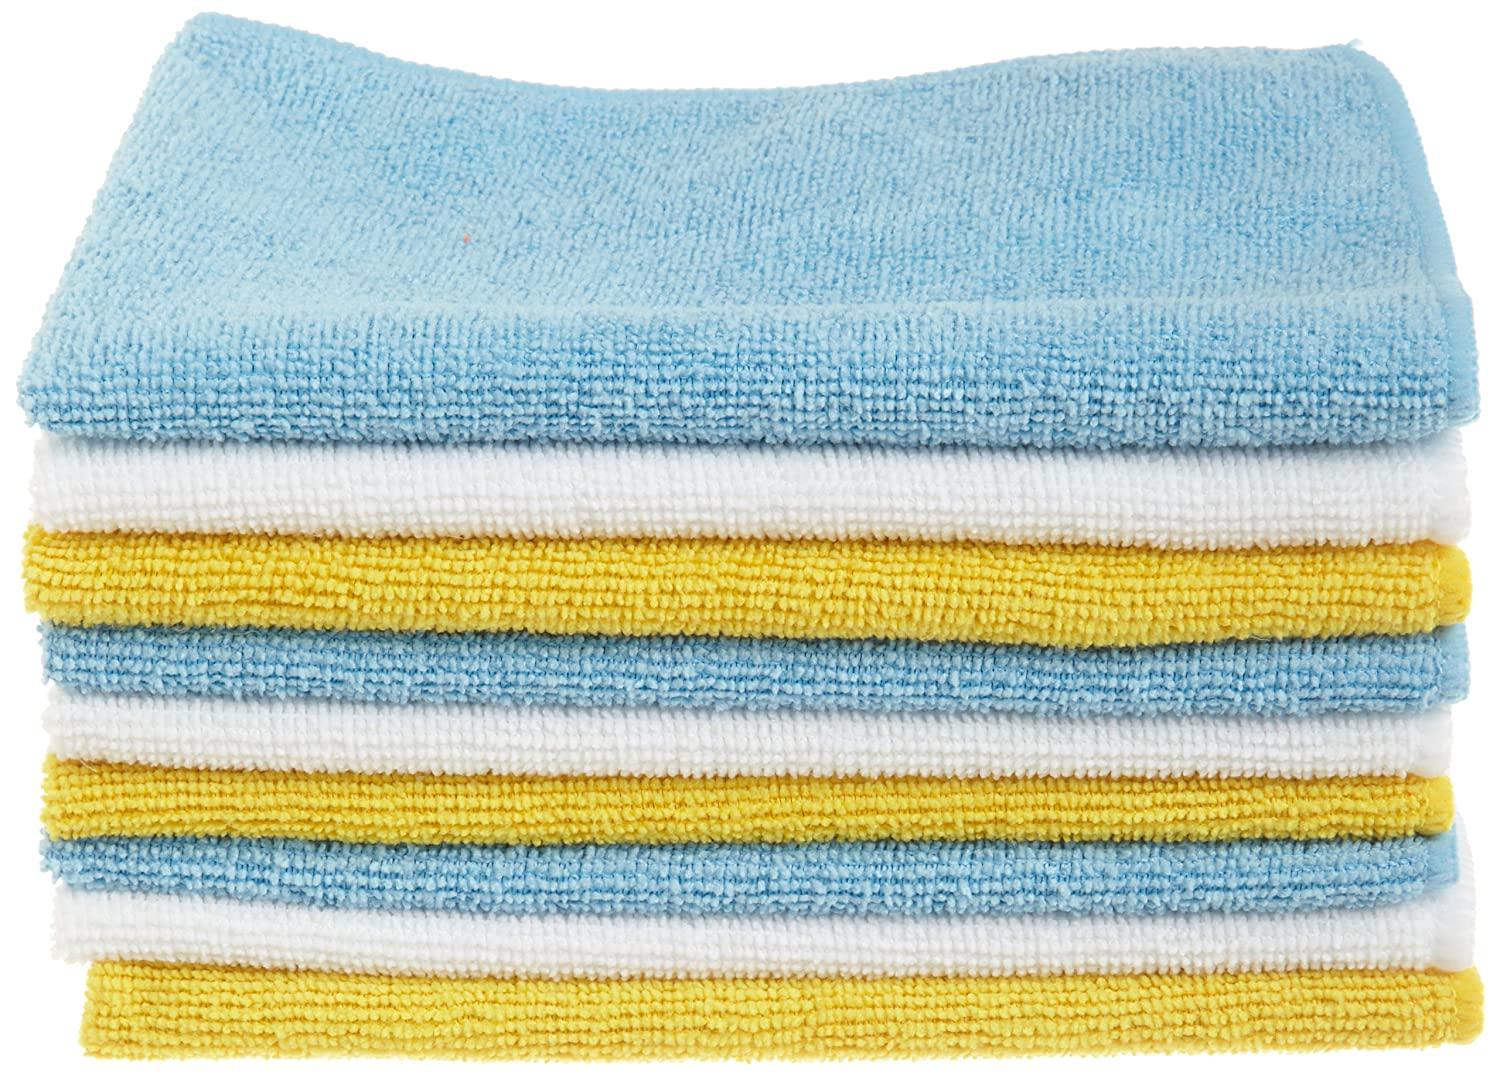 AmazonBasics Microfiber Cleaning Cloth - 36 Pack CW190423A